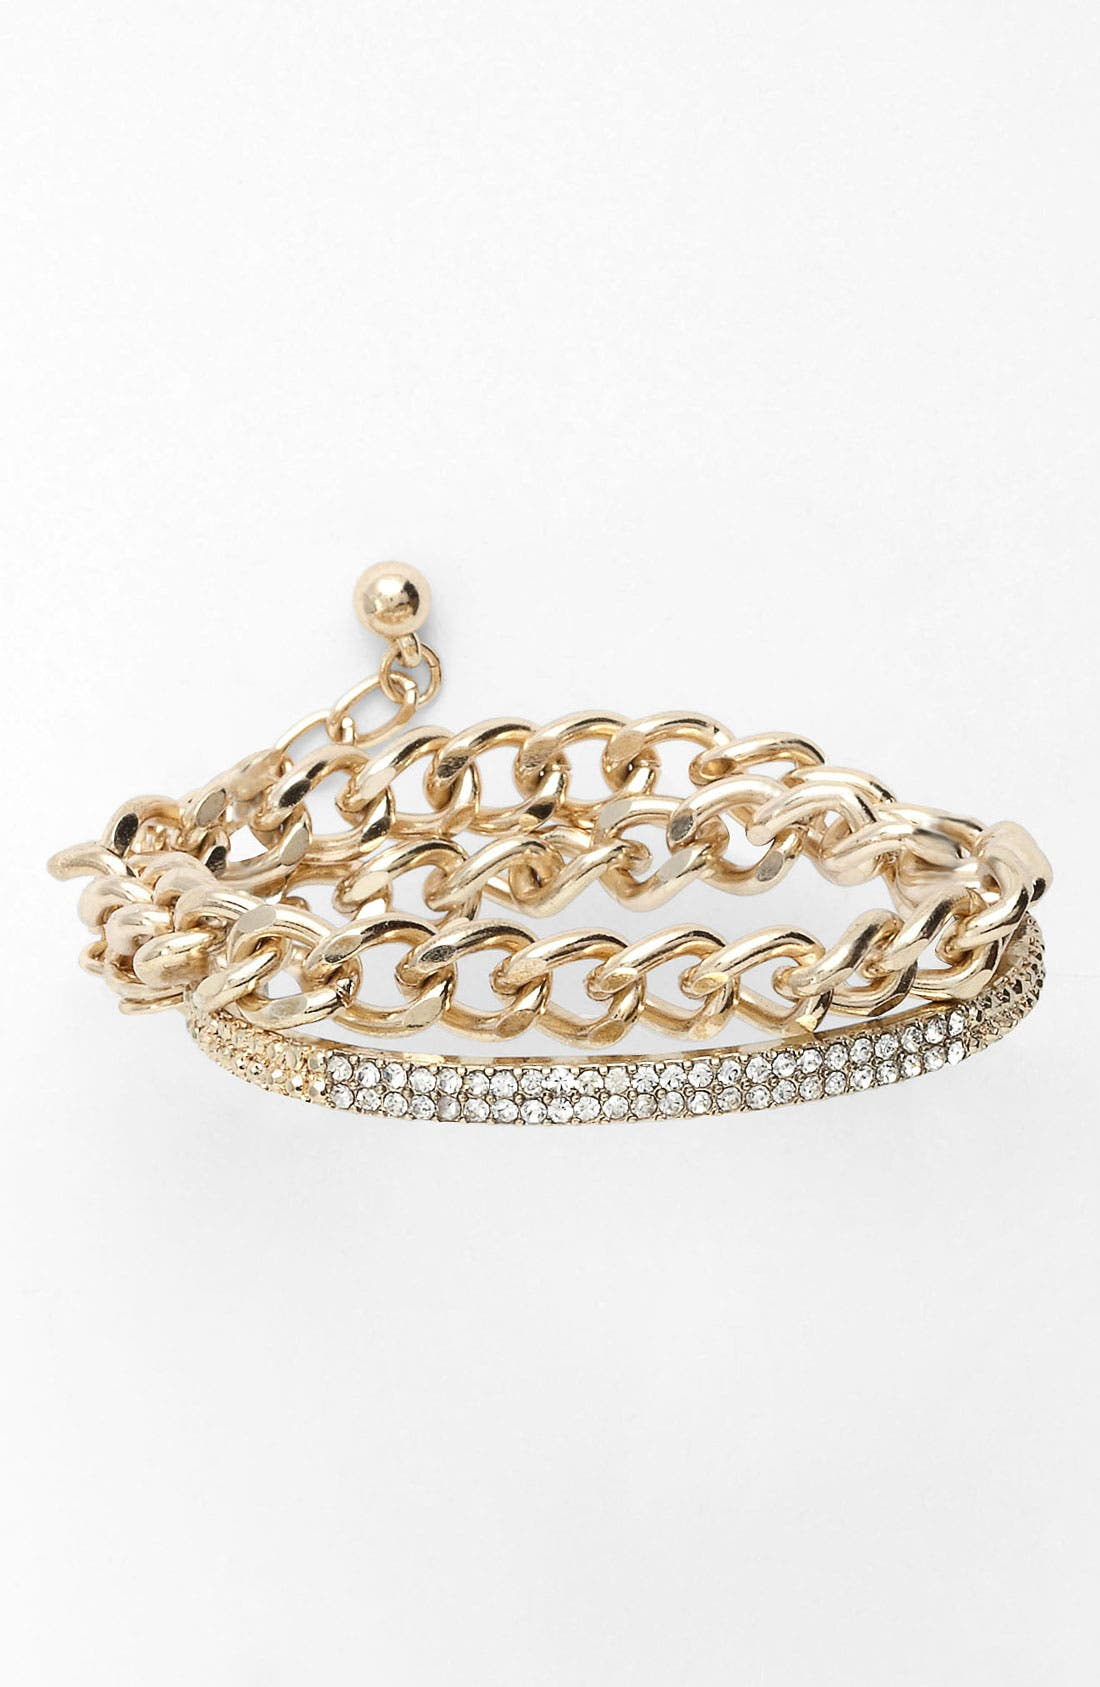 Alternate Image 1 Selected - BP. Chain & Rhinestone Wrap Bracelet